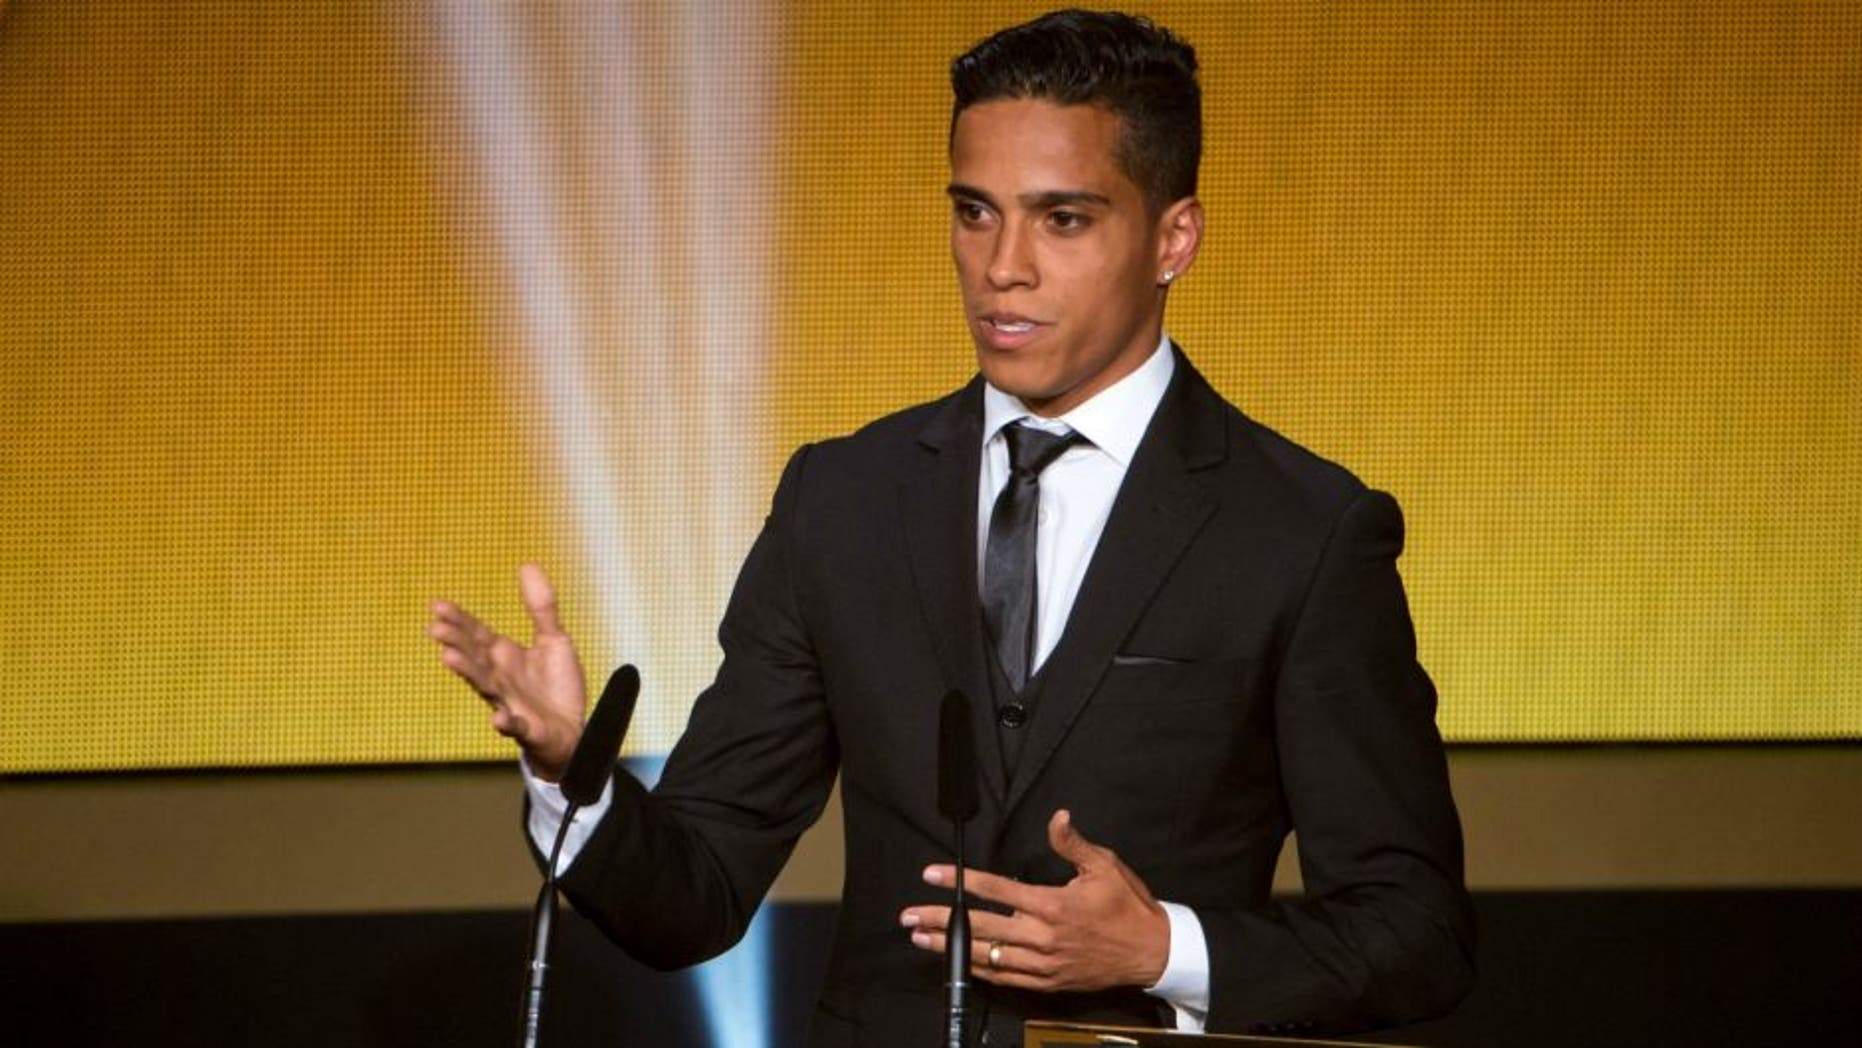 ZURICH, SWITZERLAND - JANUARY 11: FIFA Puskas Award for the best goal winner Wendell Lira of Brazil and Vila Nova arrives on stage to deliver a speech during the FIFA Ballon d'Or Gala 2015 at the Kongresshaus on January 11, 2016 in Zurich, Switzerland. (Photo by Philipp Schmidli/Getty Images)